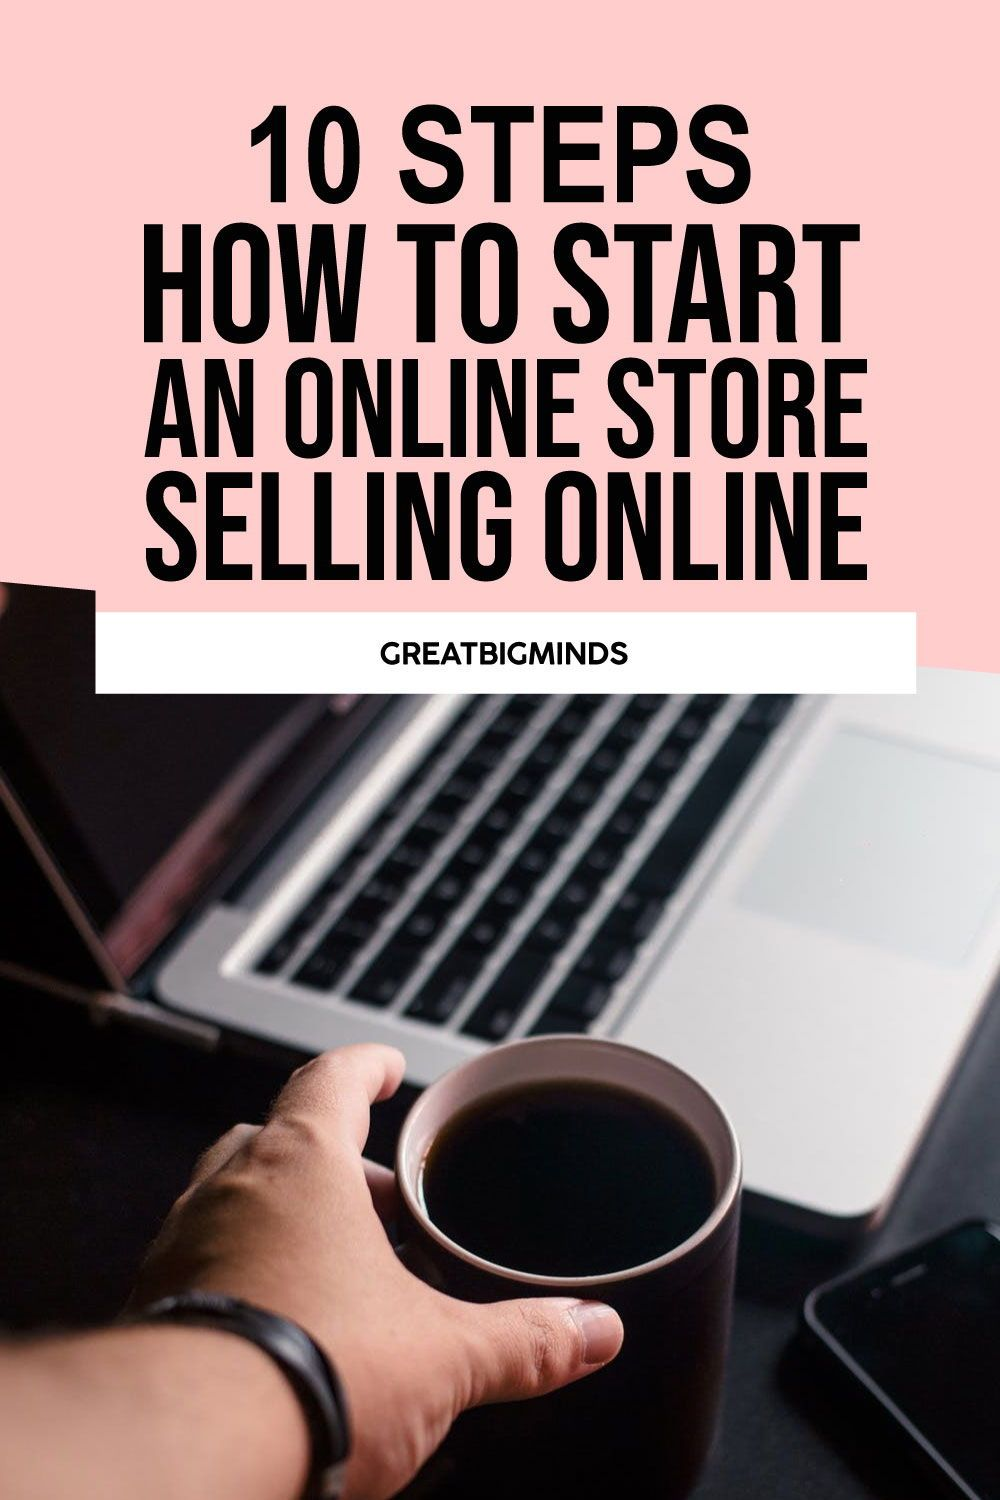 How To Set Up A Shopify Store In 2020 And Make Money 10 Easy Steps In 2020 Selling Online Things To Sell Shopify Store